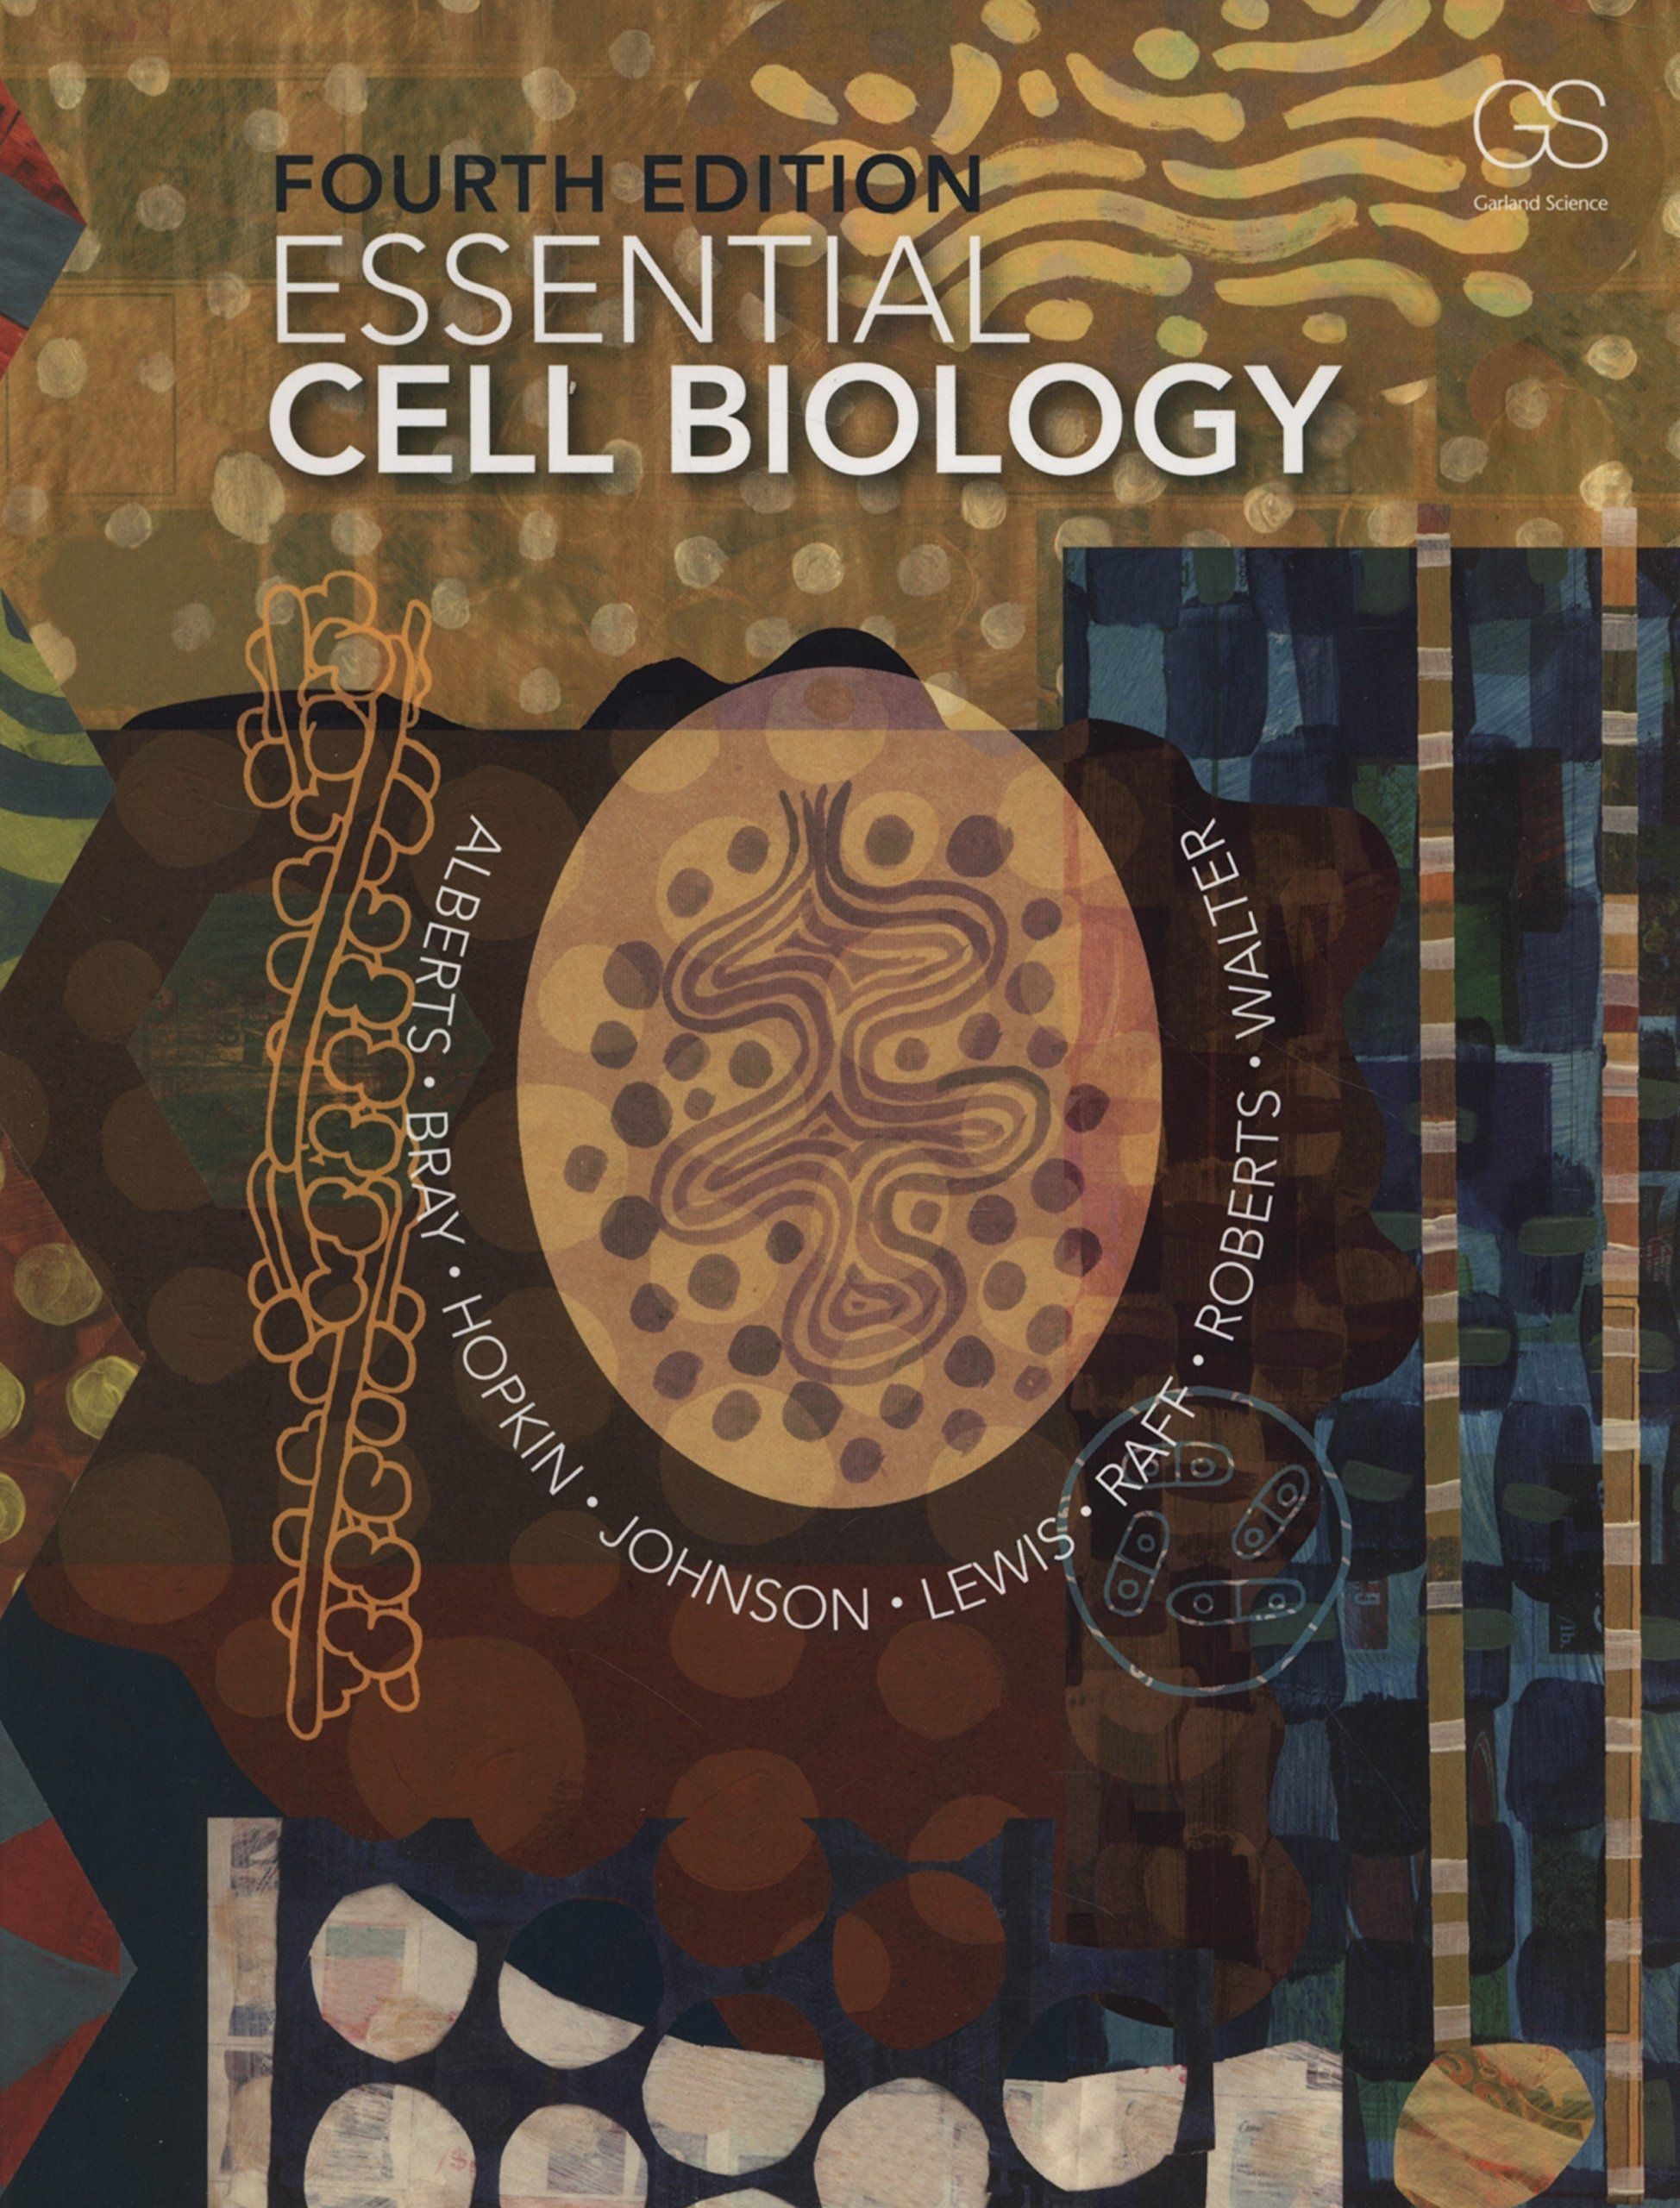 Essential Cell Biology 4th Edition Pdf In 2021 Cell Biology Biology Conceptual Framework